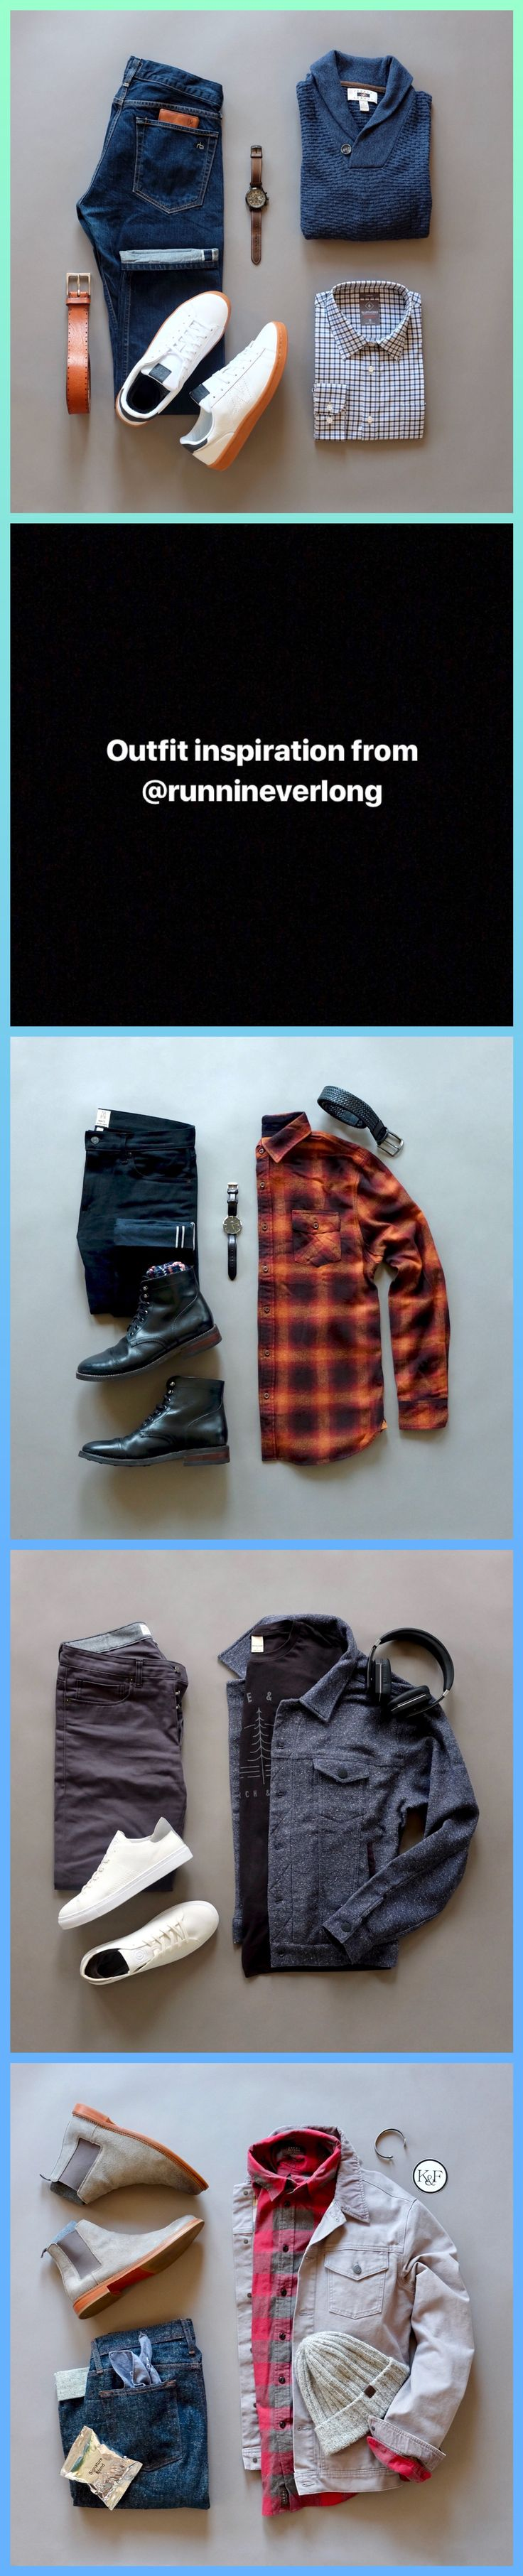 Casual outfit inspiration from @runnineverlong  #flannel #casual #outfits #menswear